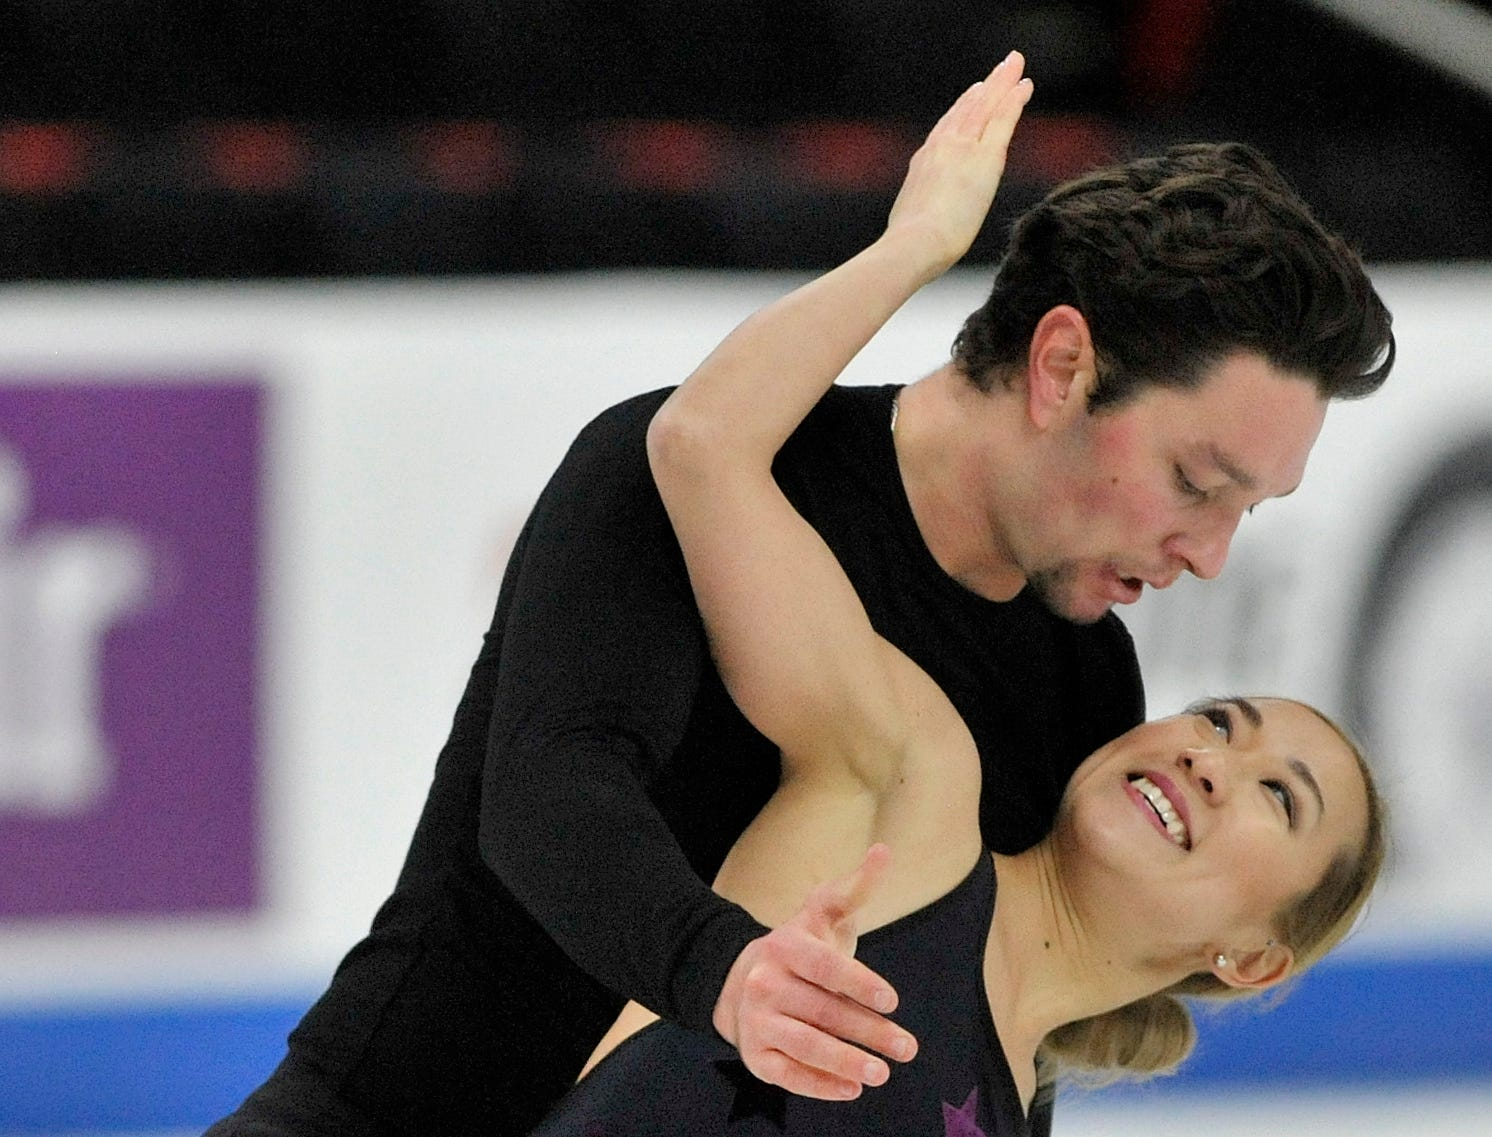 Pairs Erika Smith and AJ Reiss practice during the 2019 GEICO U.S. Figure Skating Championship at Little Caesars Arena in Detroit, Tuesday, January 22, 2019.